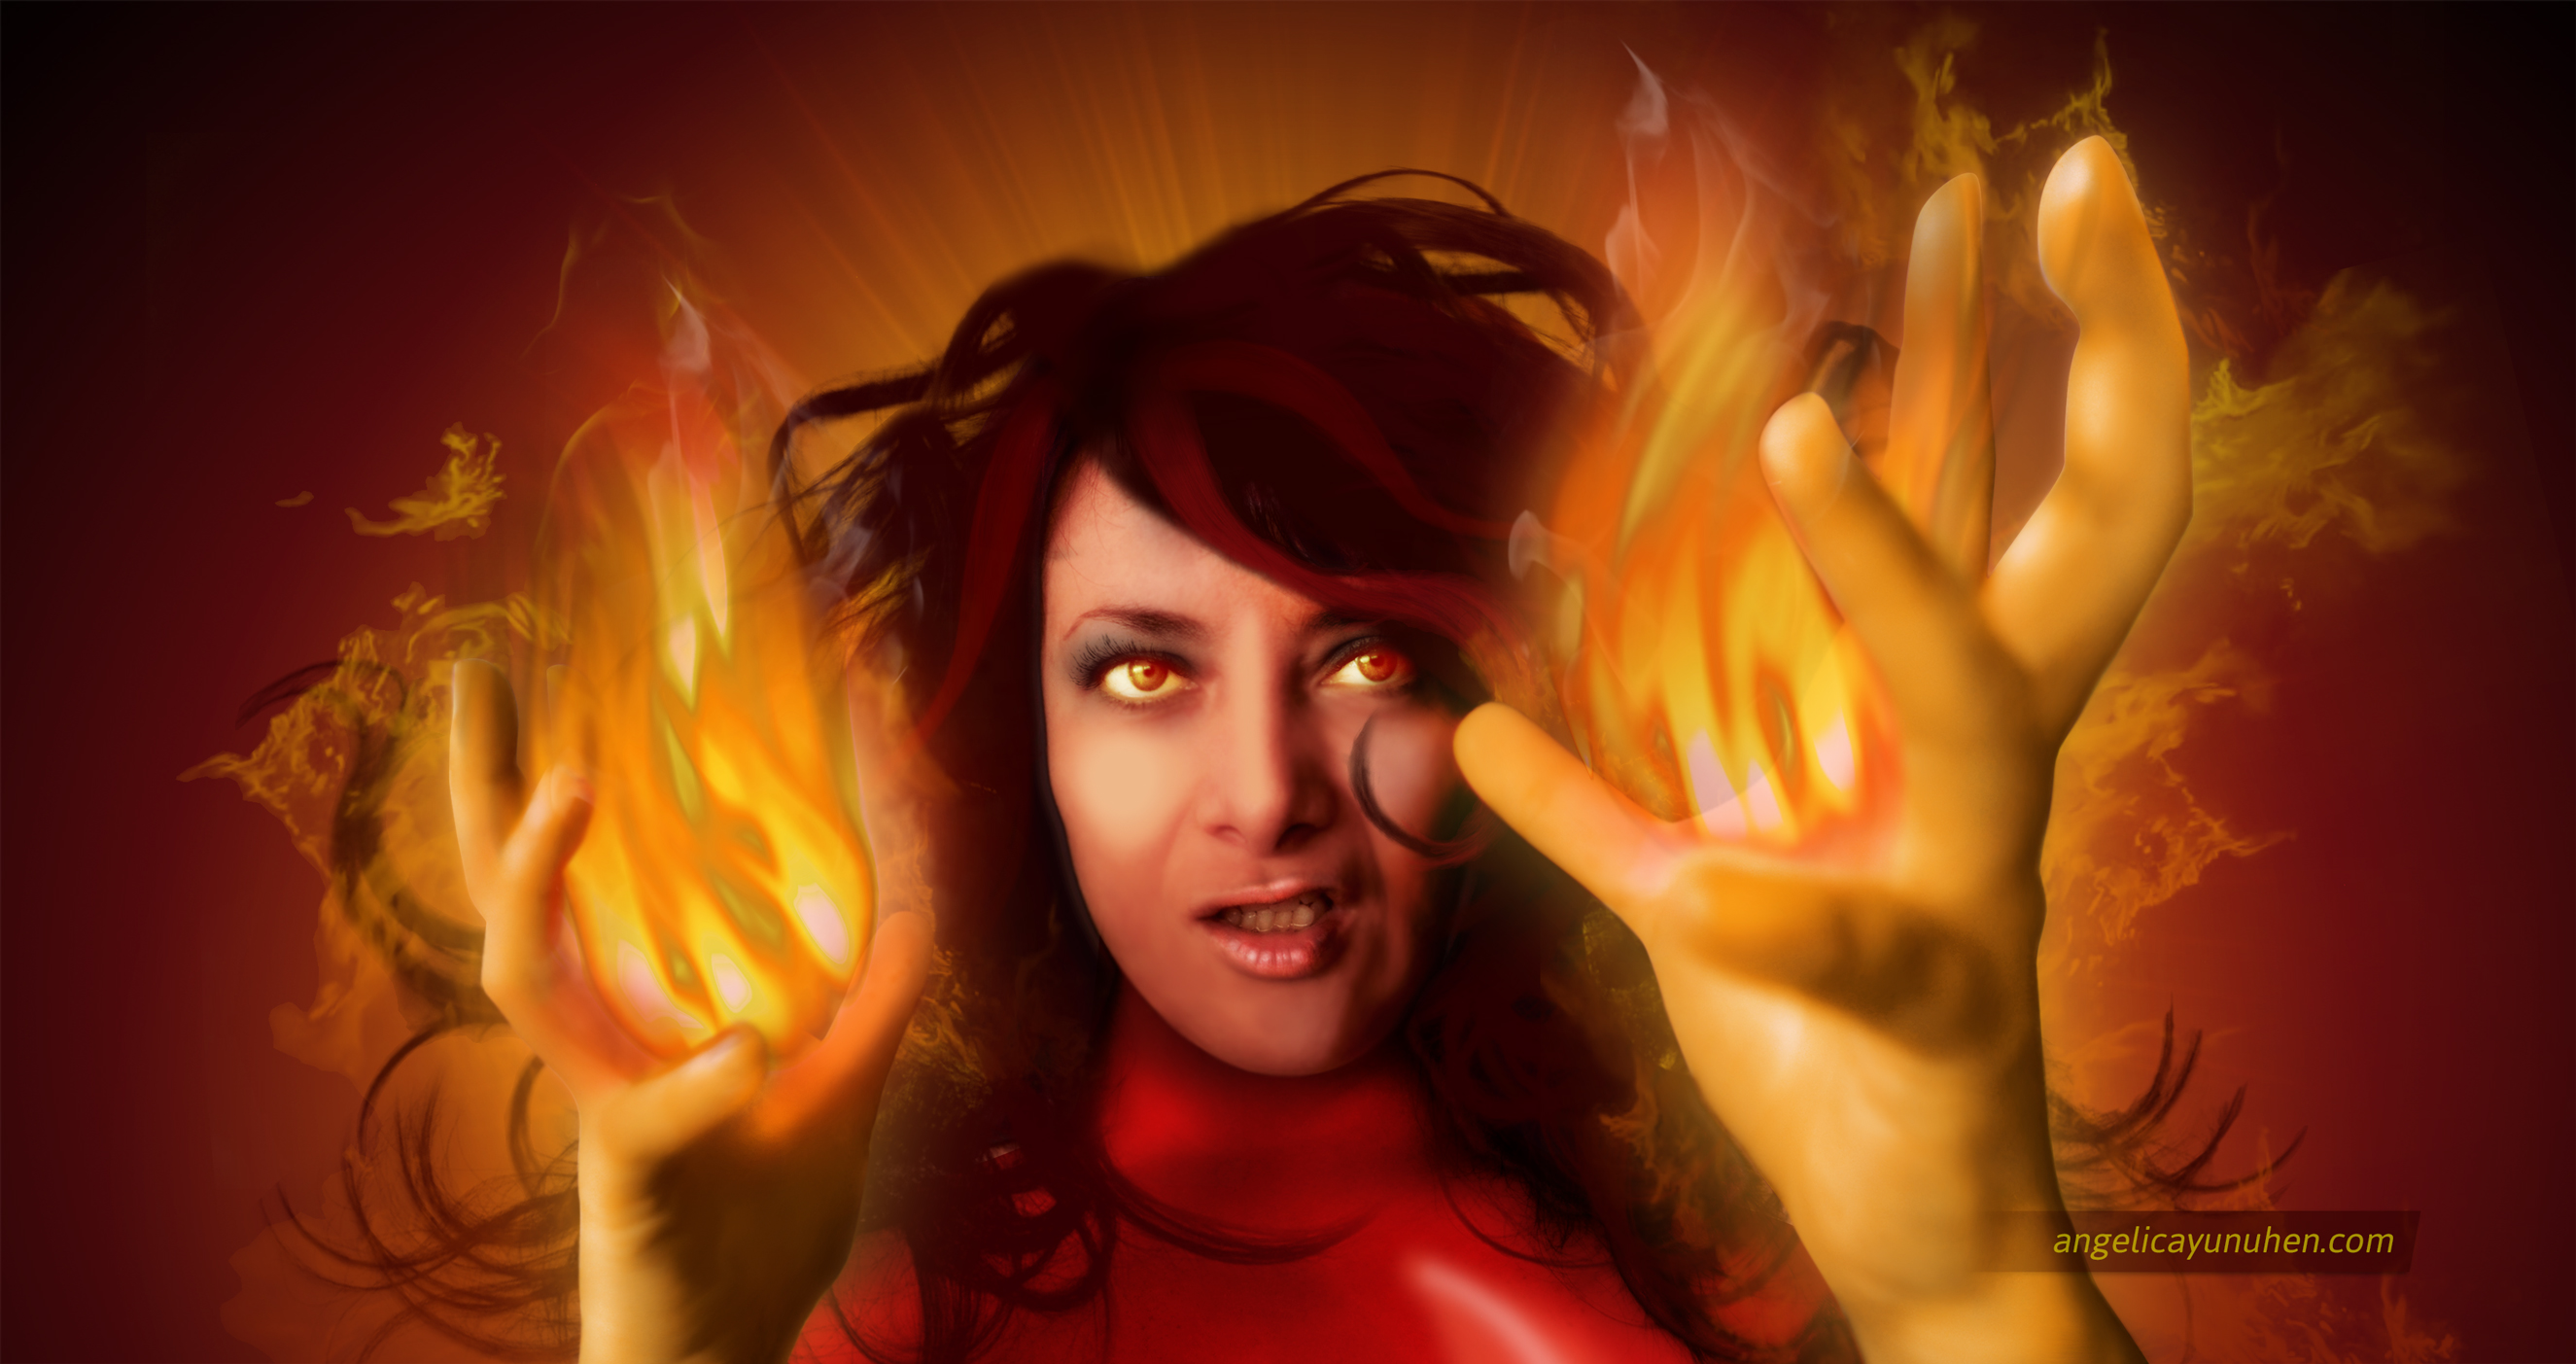 Myself as Dark Phoenix